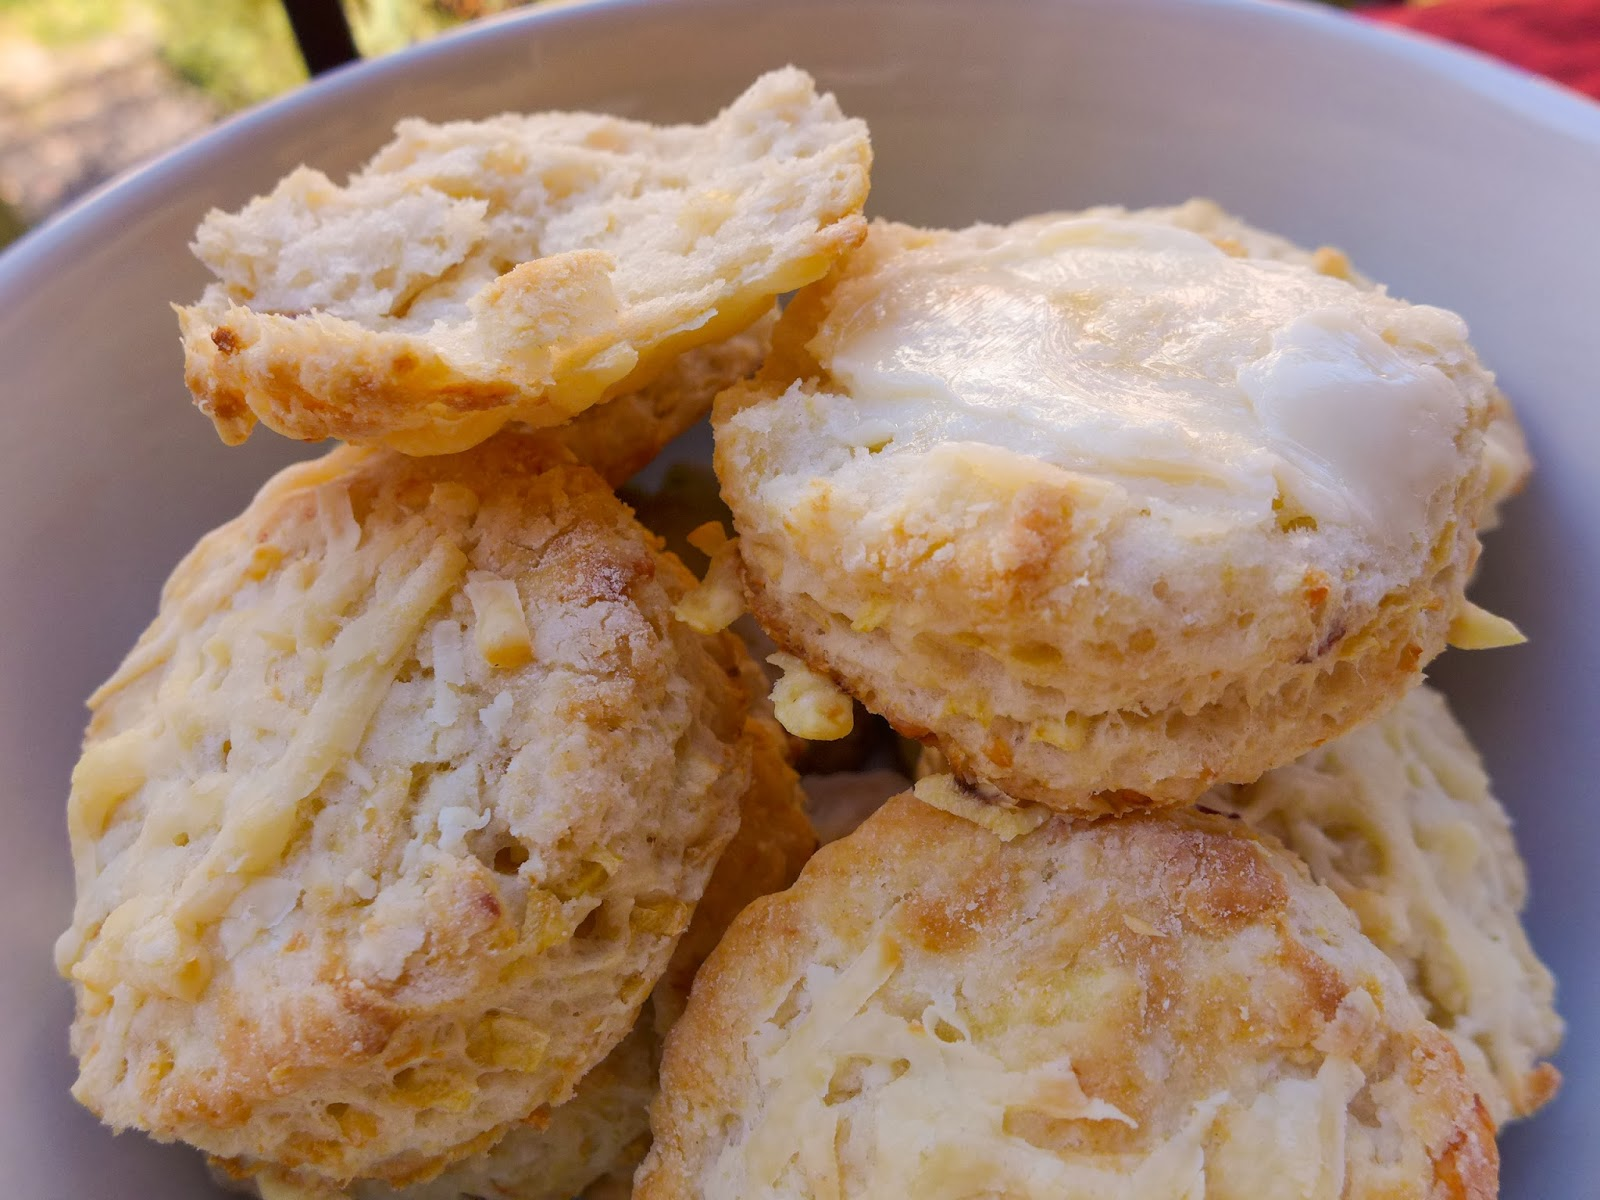 Apple & Cheddar Scones (adapted from The English Kitchen )